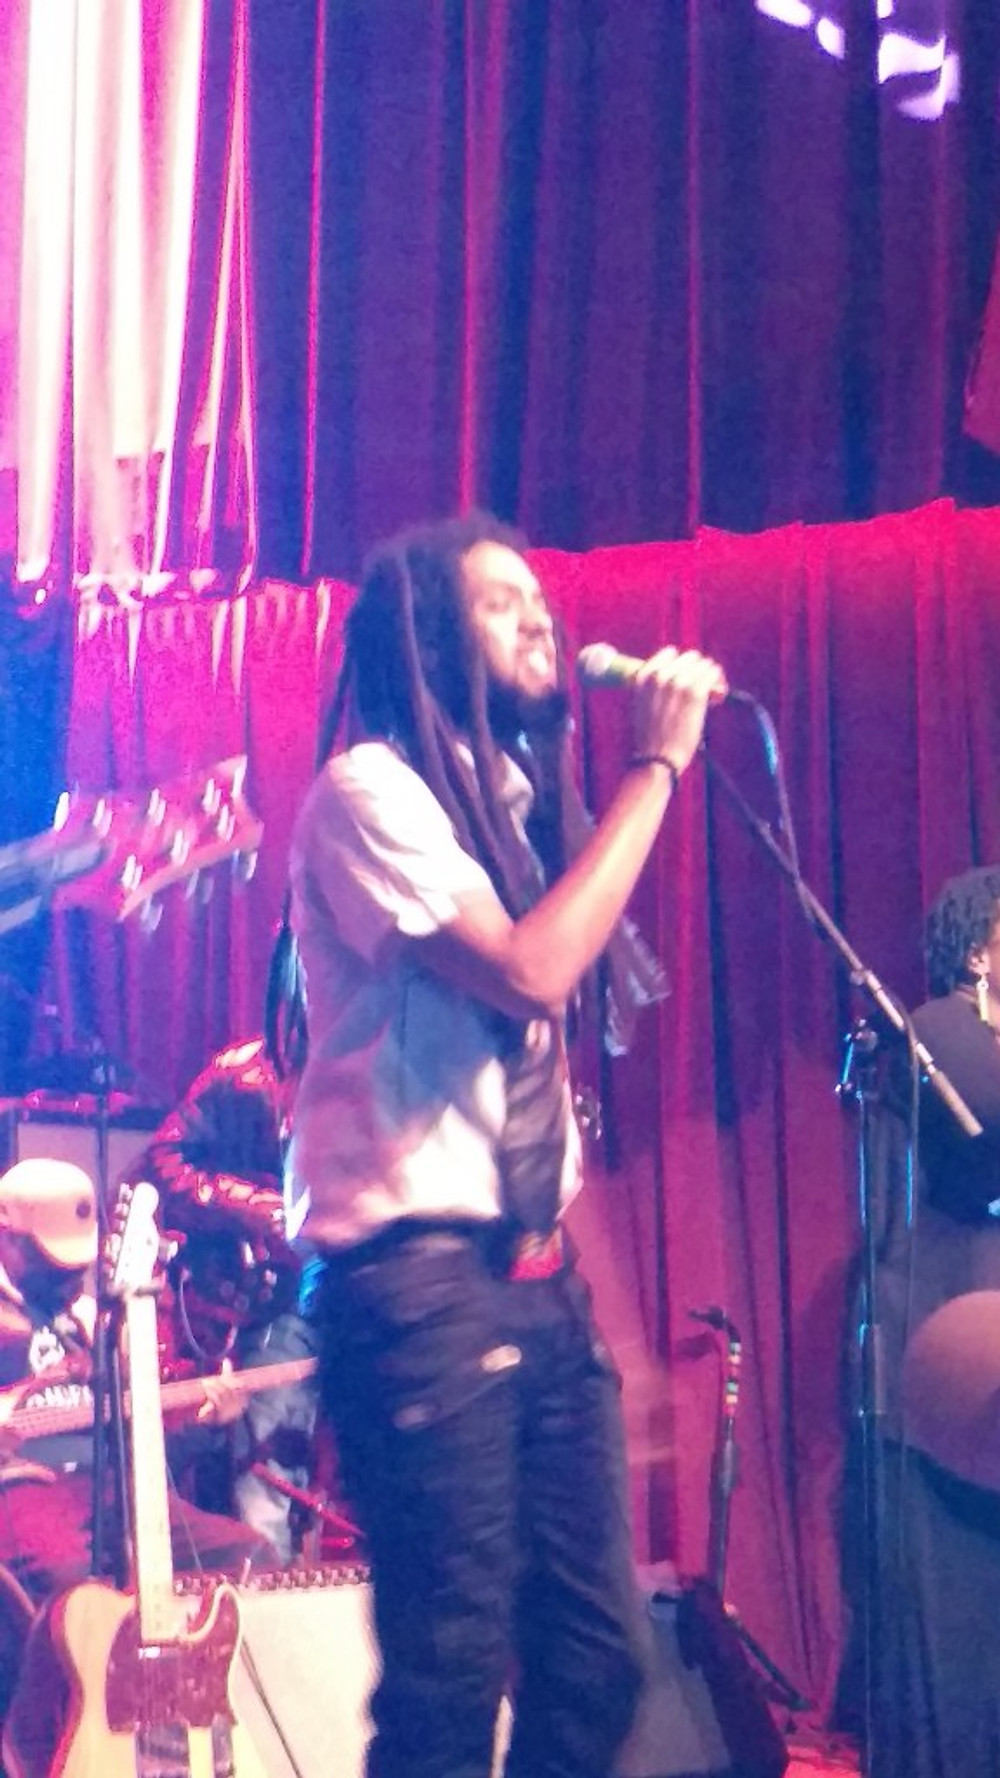 A picture of the lead singer of The Wailers performing.